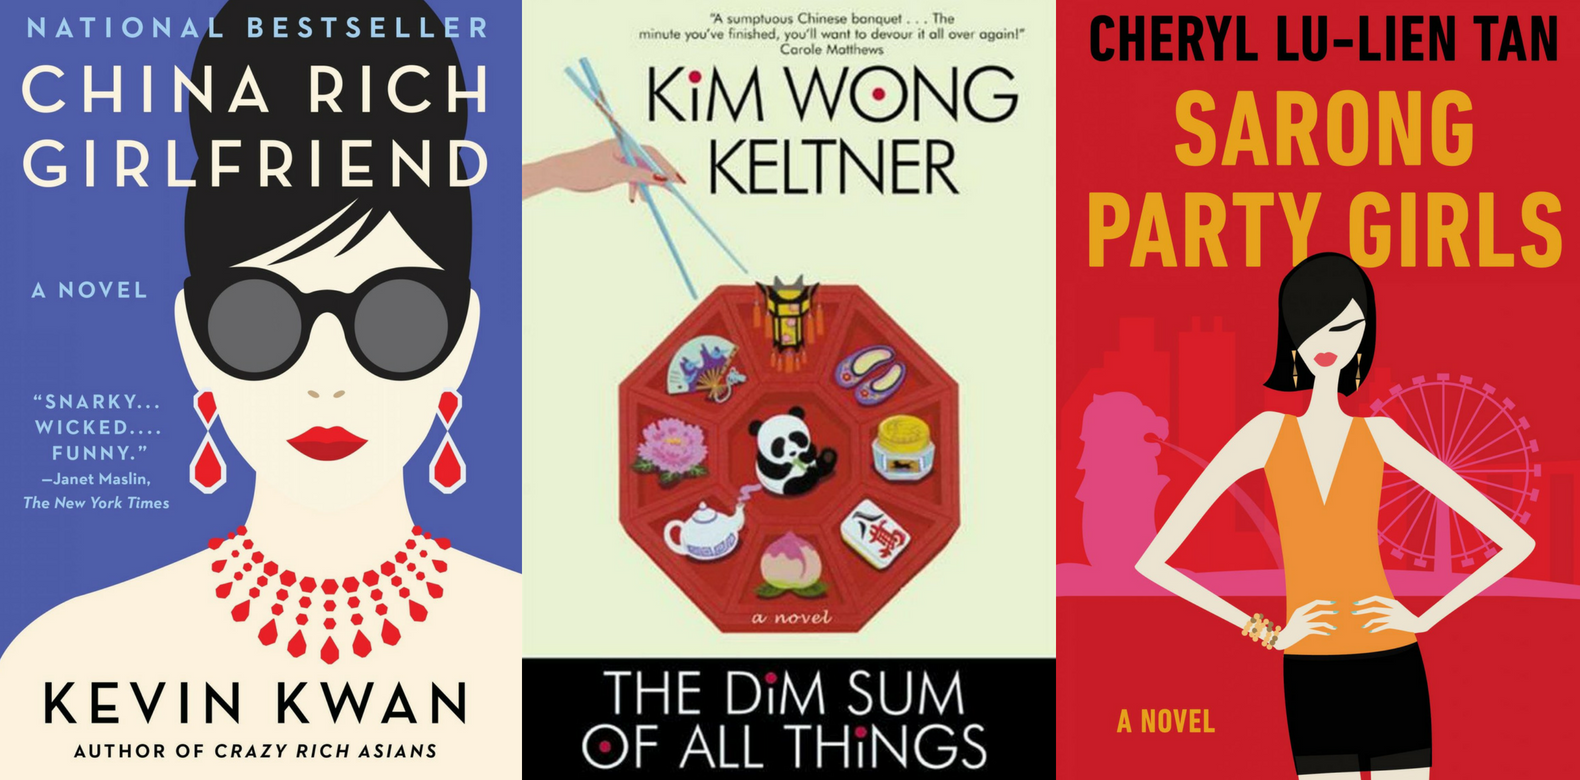 If You Liked Crazy Rich Asians, You'll Love These Books